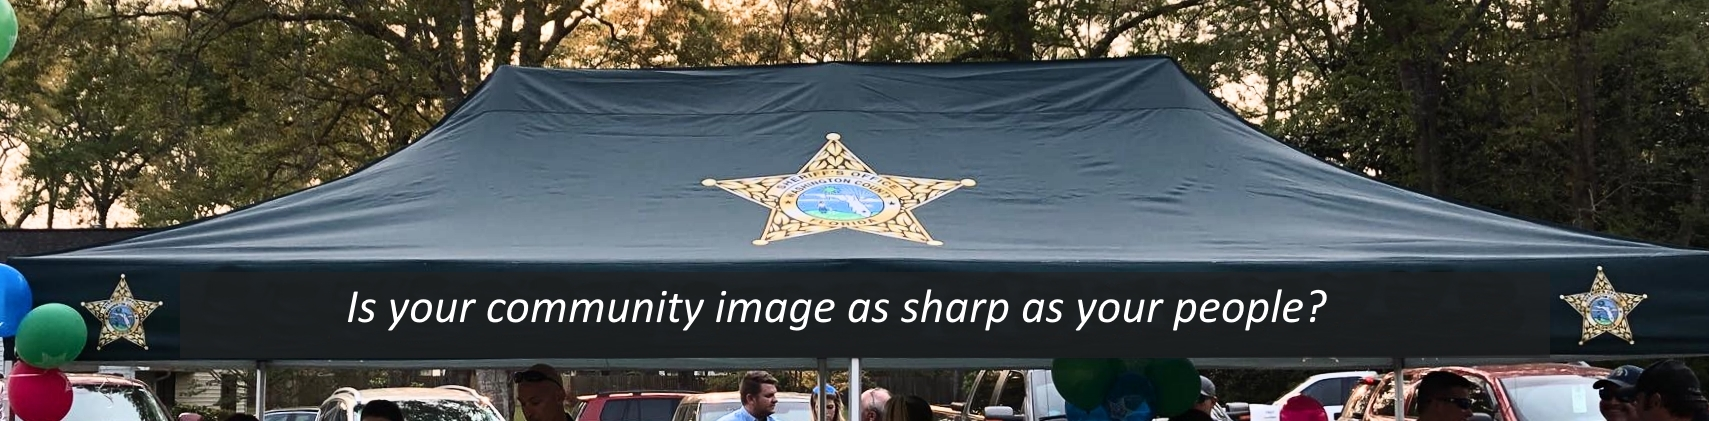 Sheriff Tent